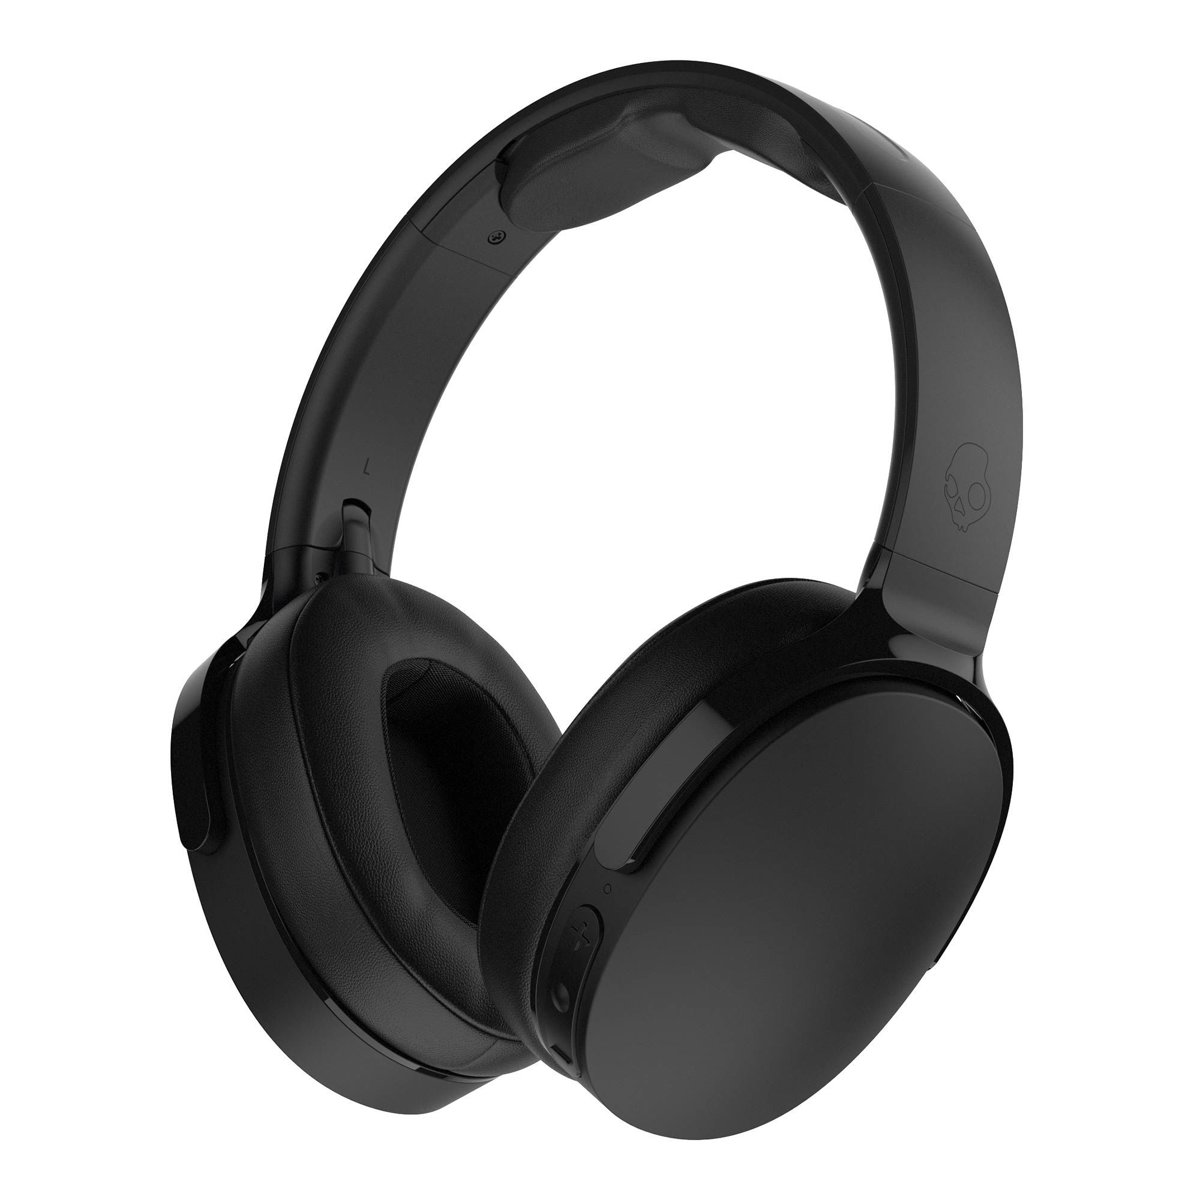 Hesh 3 Wireless headset